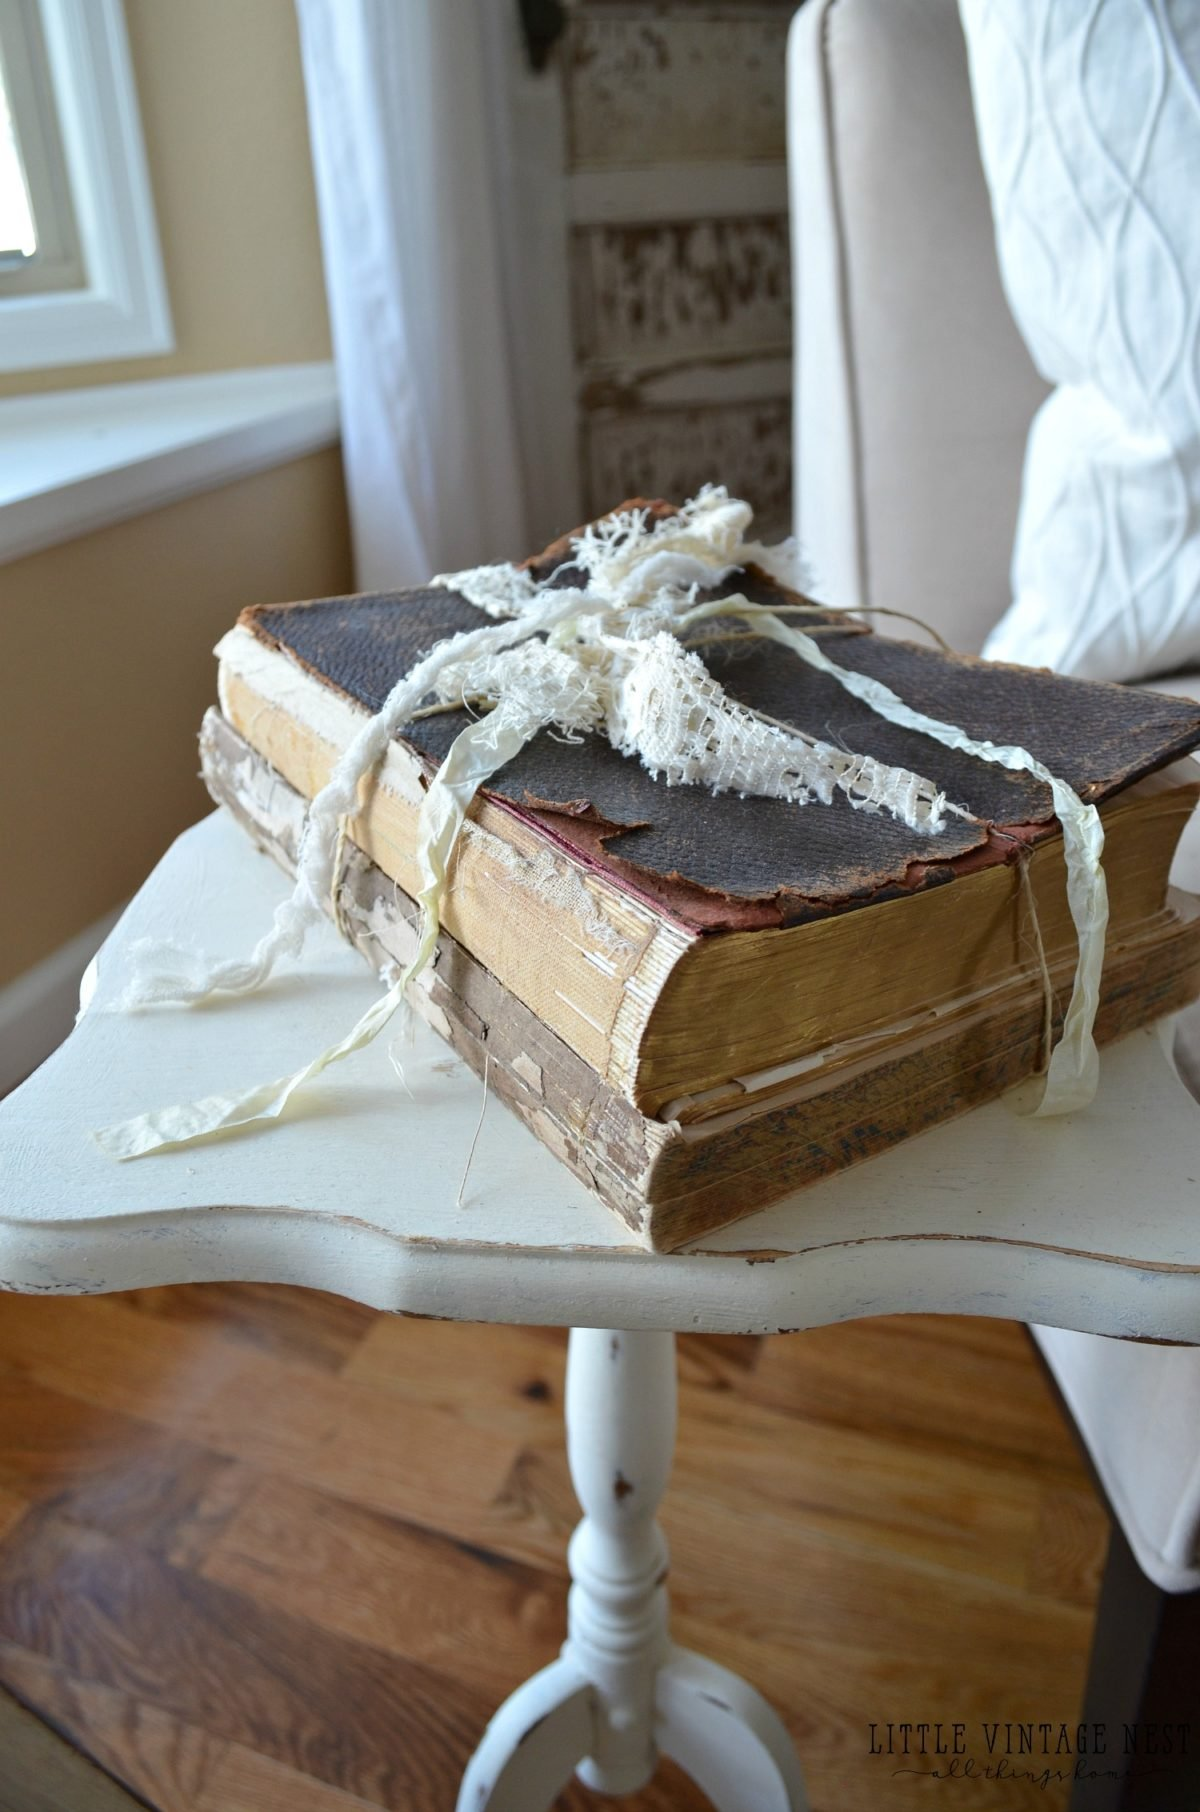 Decorating with Vintage Decor::Old Books